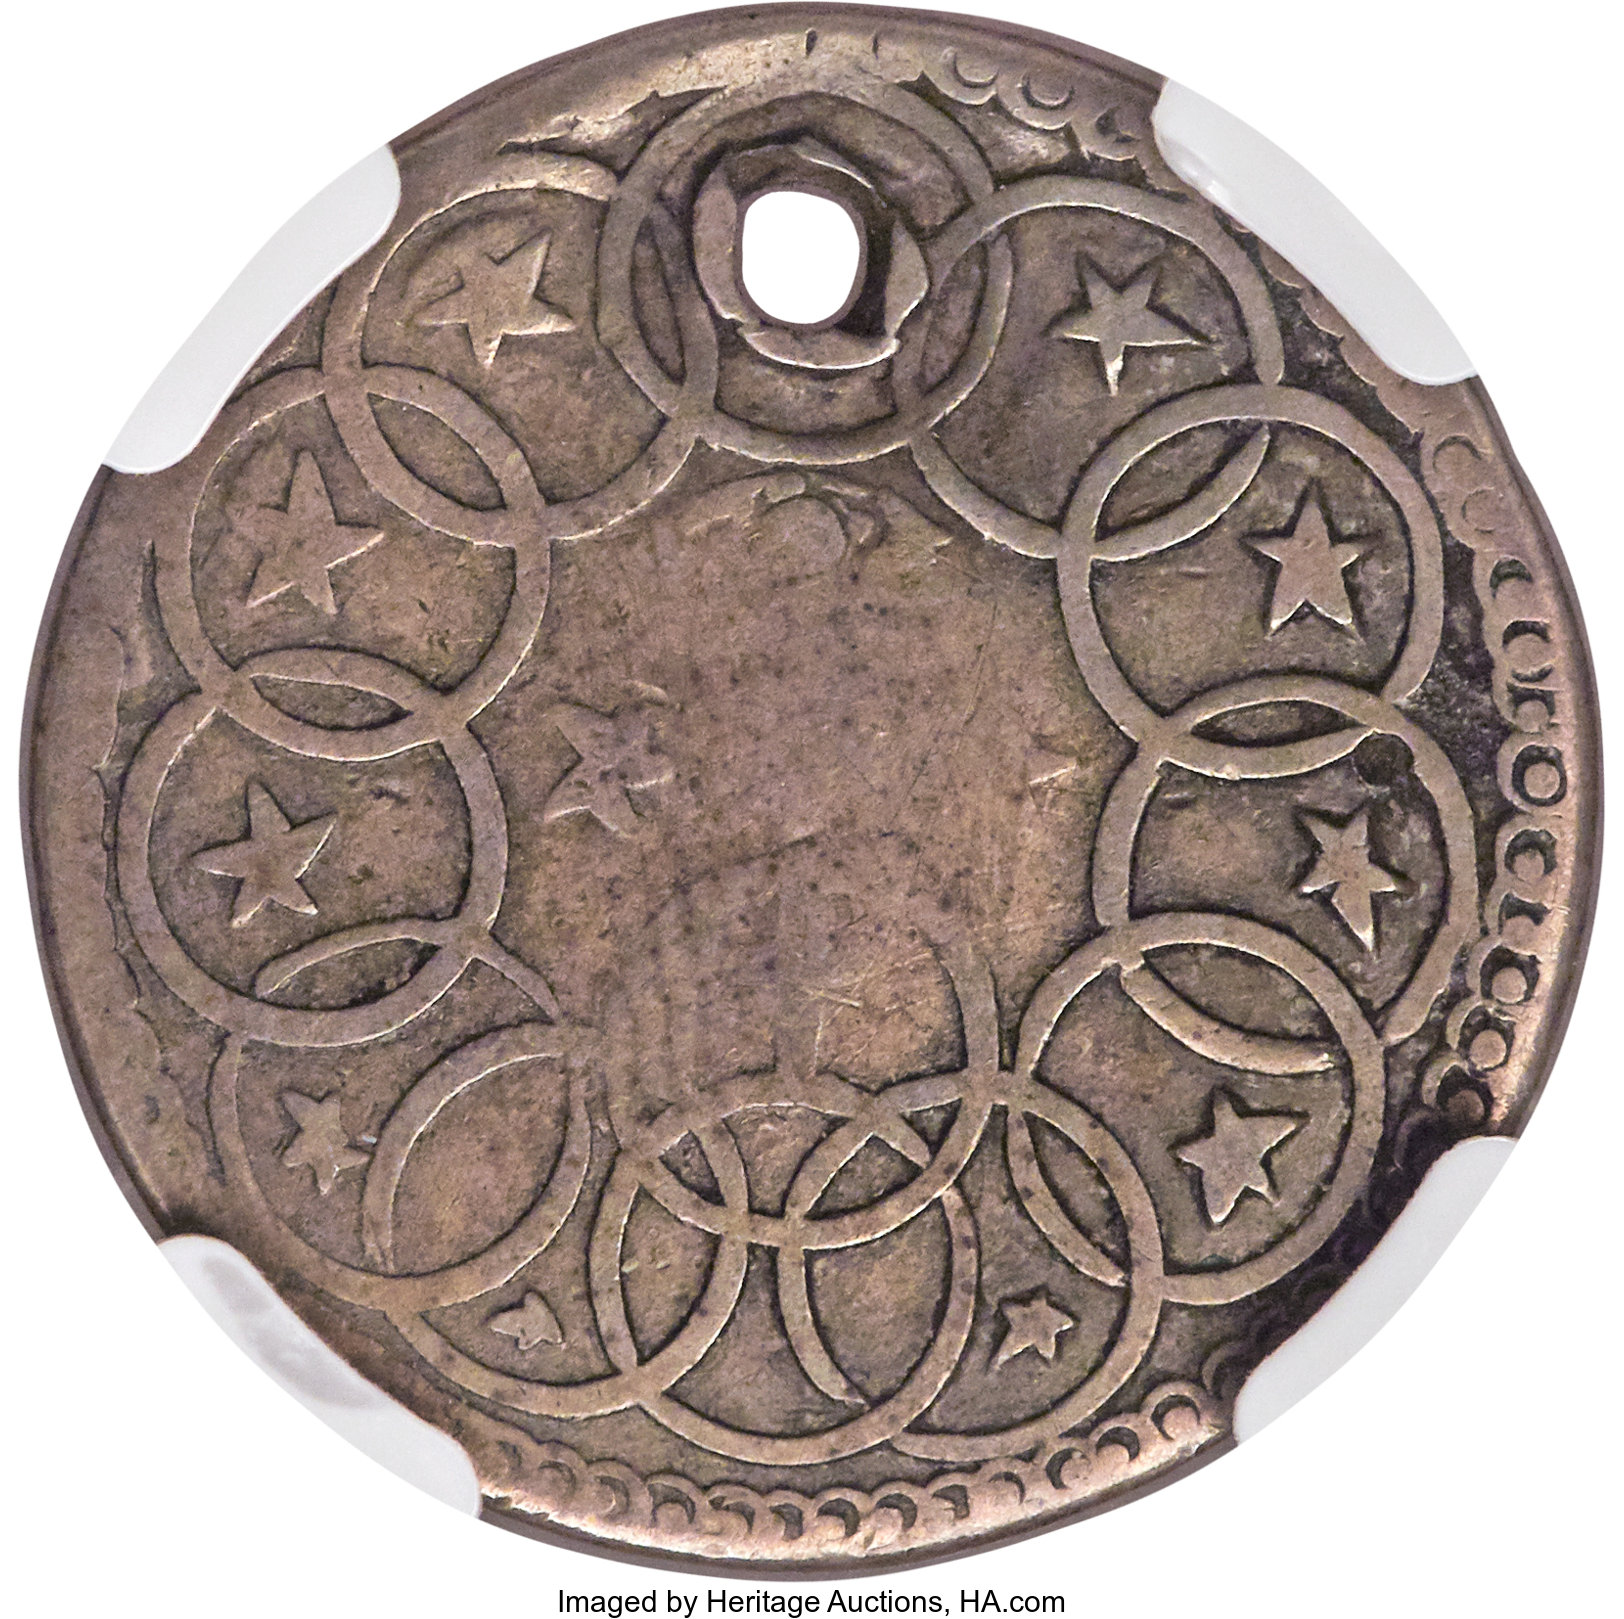 sample image for 1783 Chalmers 1s, Rings